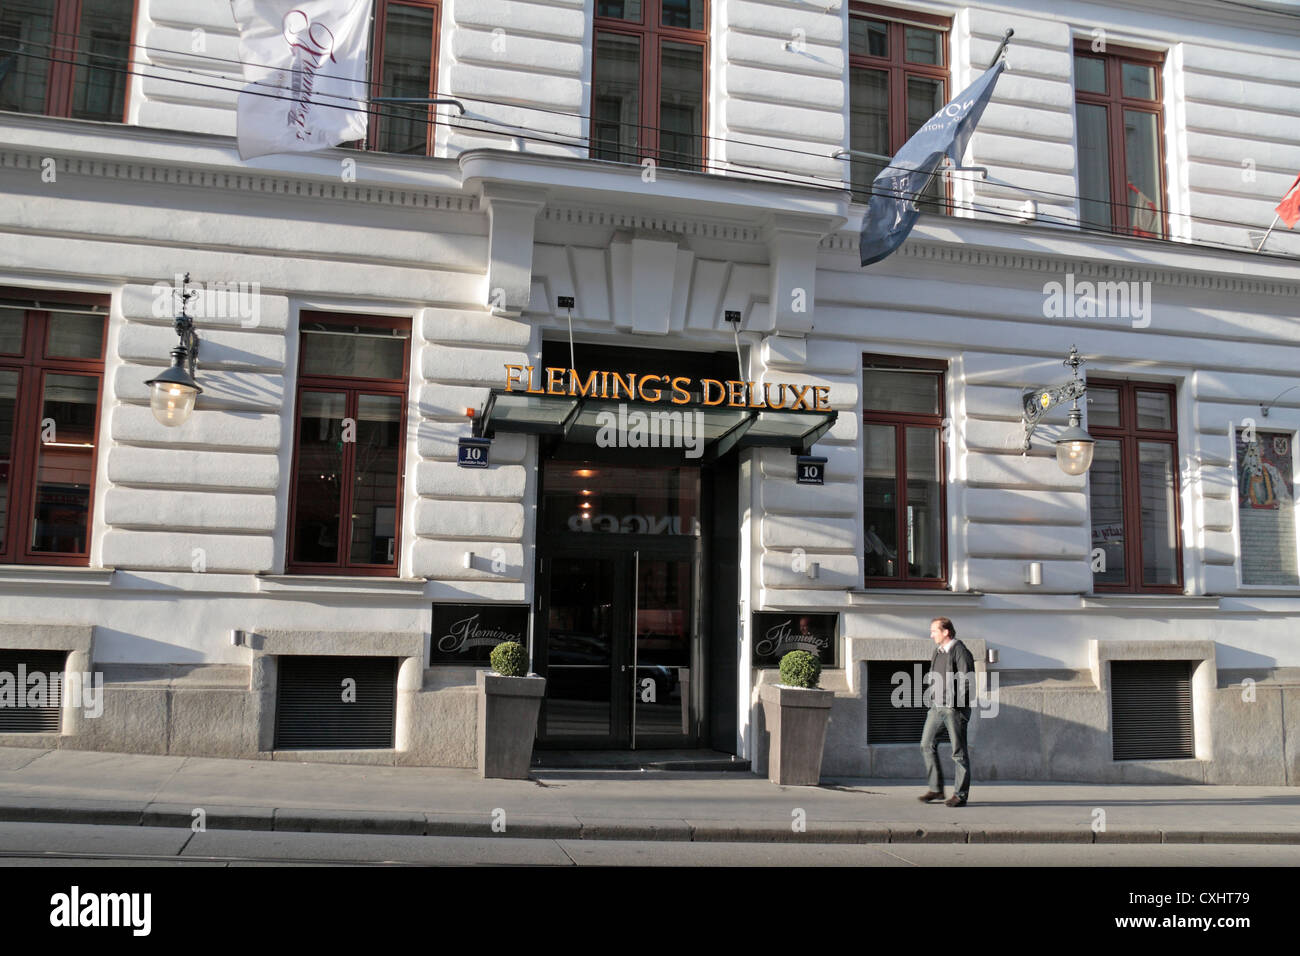 Entrance to the Fleming's Deluxe Hotel in Vienna, Austria. - Stock Image